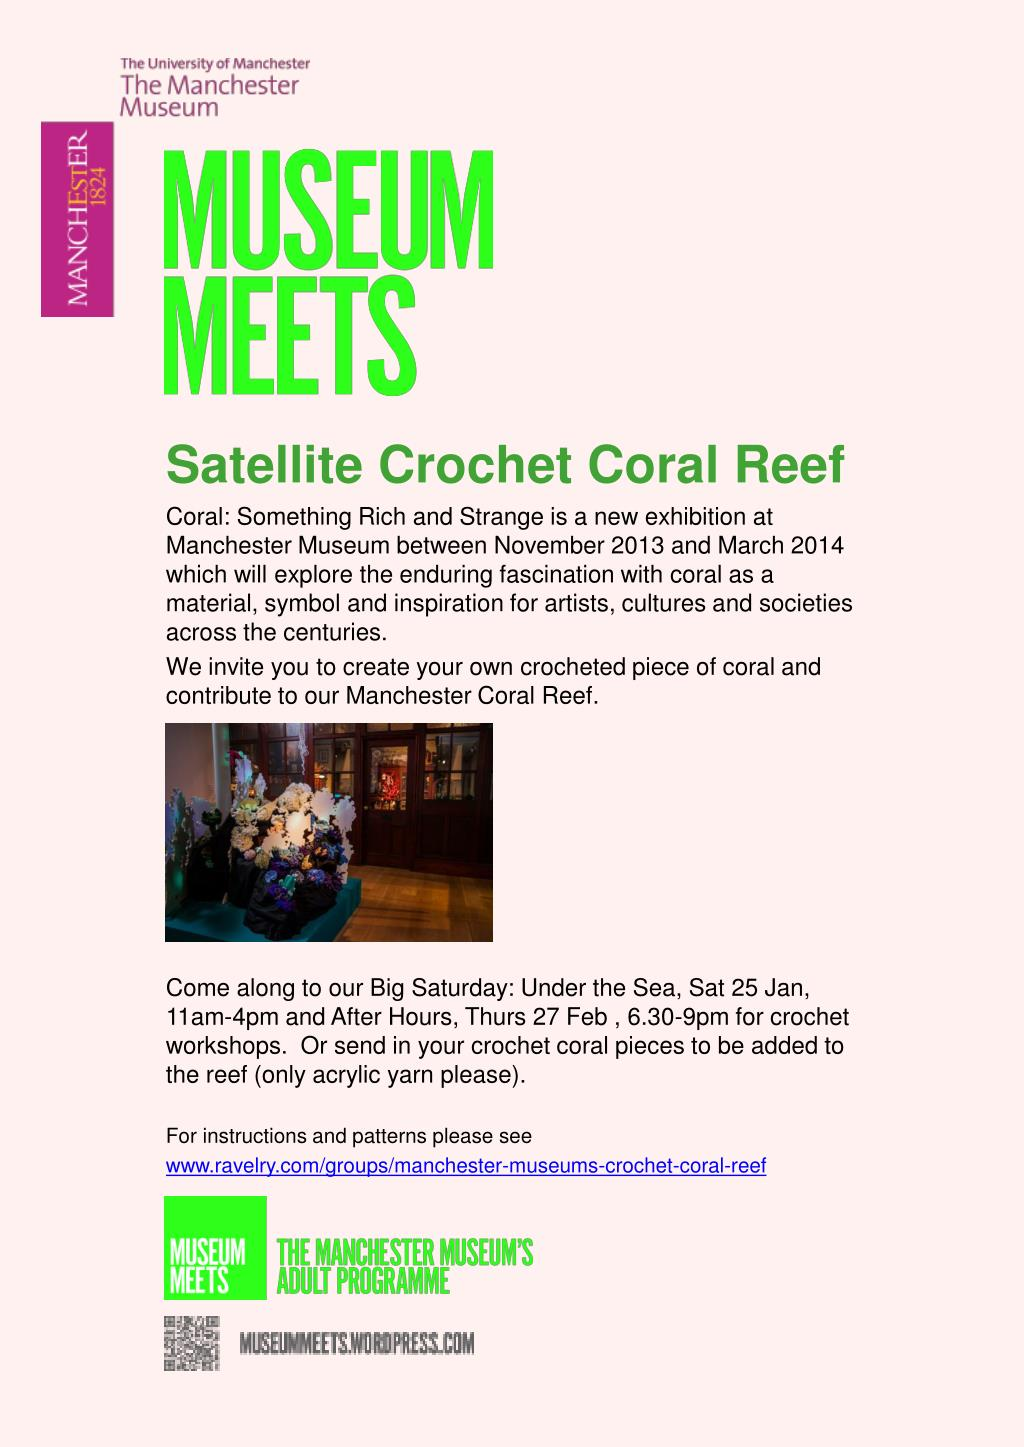 Ppt Satellite Crochet Coral Reef Powerpoint Presentation Id2559644